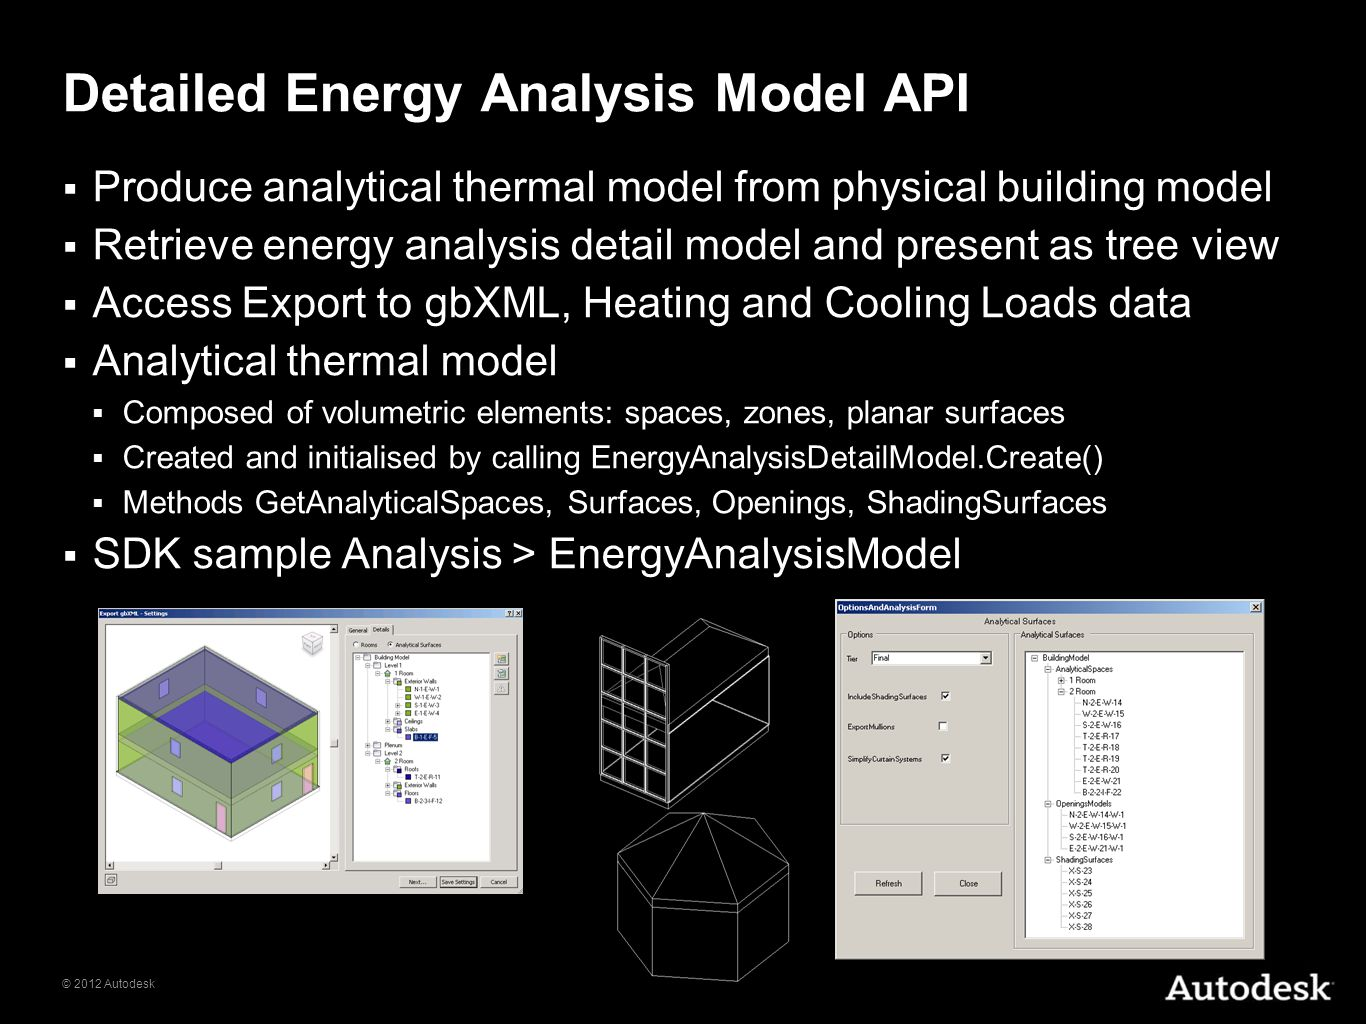 Detailed Energy Analysis Model API